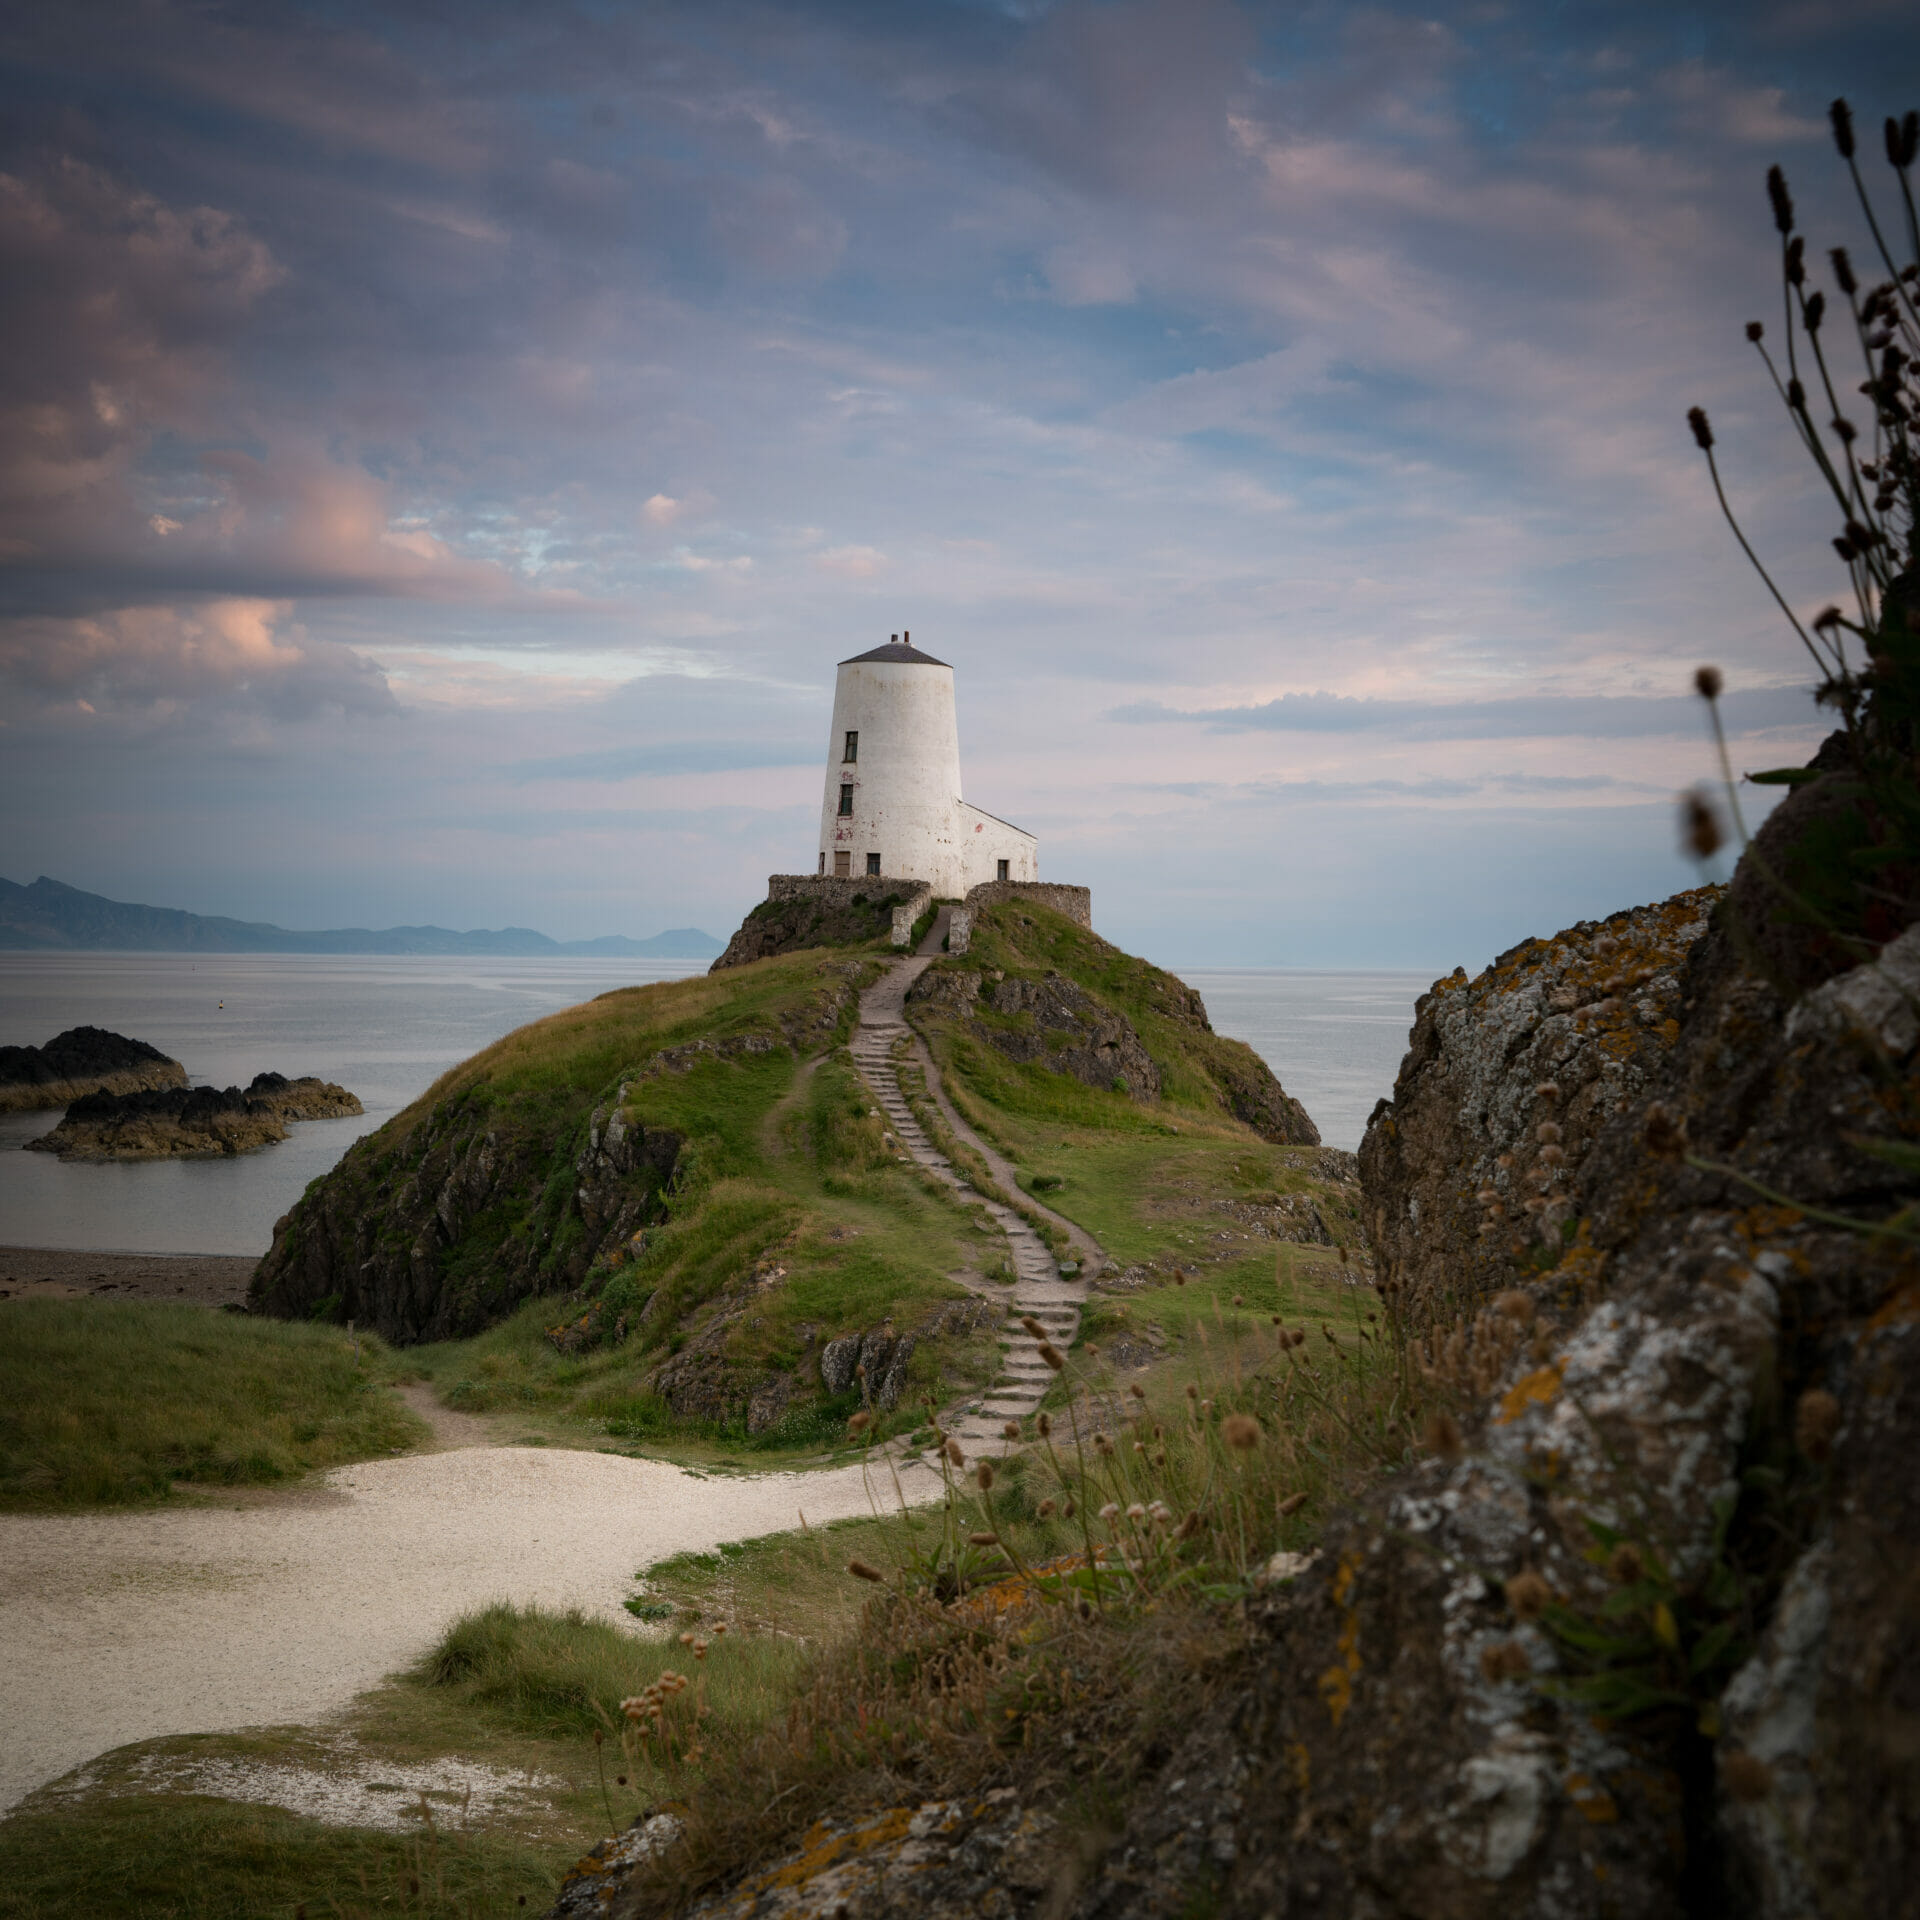 Photo of the old lighthouse on Llanddwyn Island, Anglesey - Taken on a Welshot Photographic Workshop